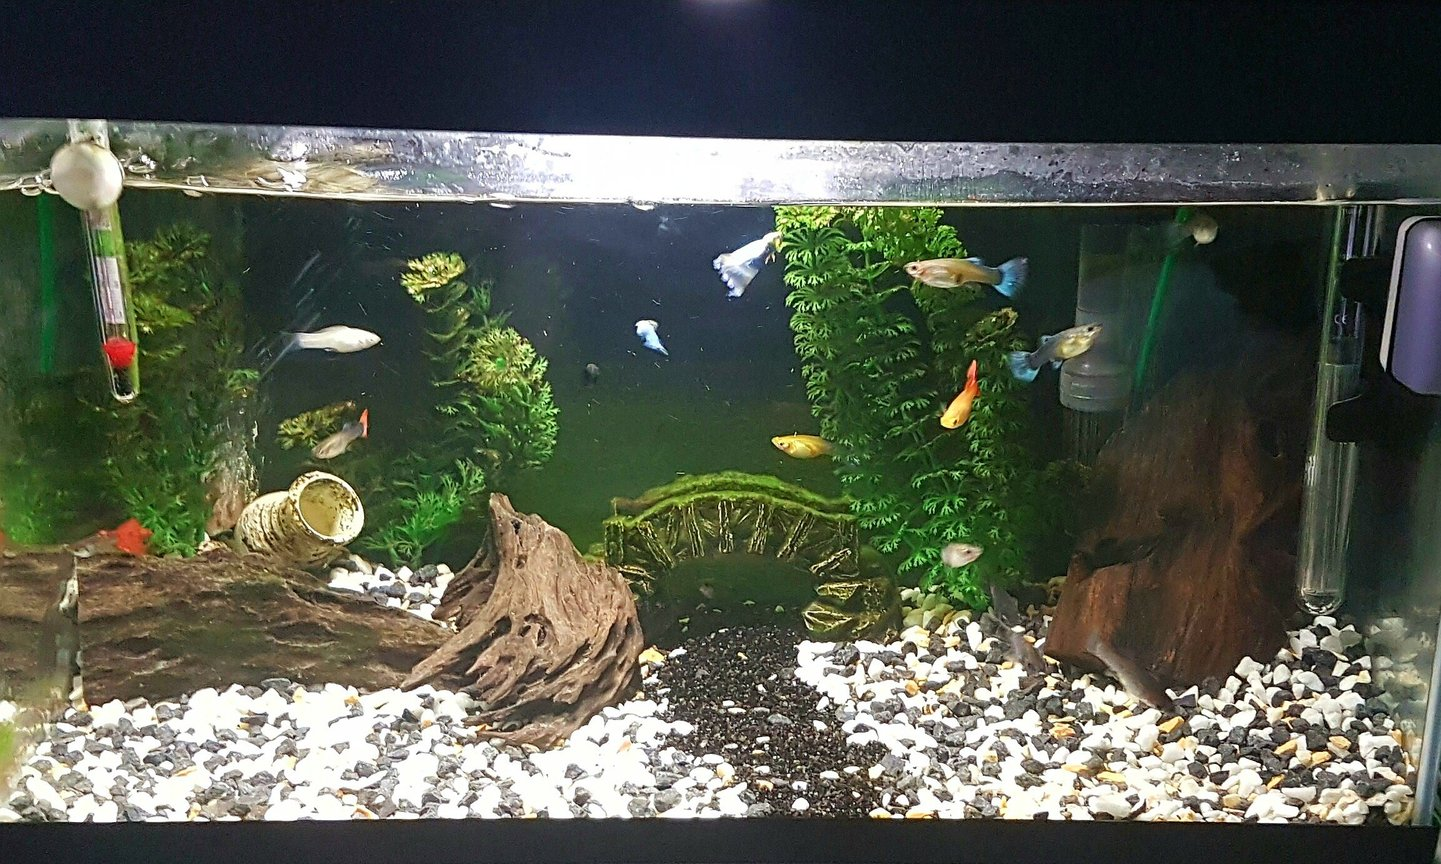 47 gallons freshwater fish tank (mostly fish and non-living decorations) - tried to make my 54L/14.2G tank look pretty with some old plastic plants and some wood and a cool small Bridge. What do you think ?